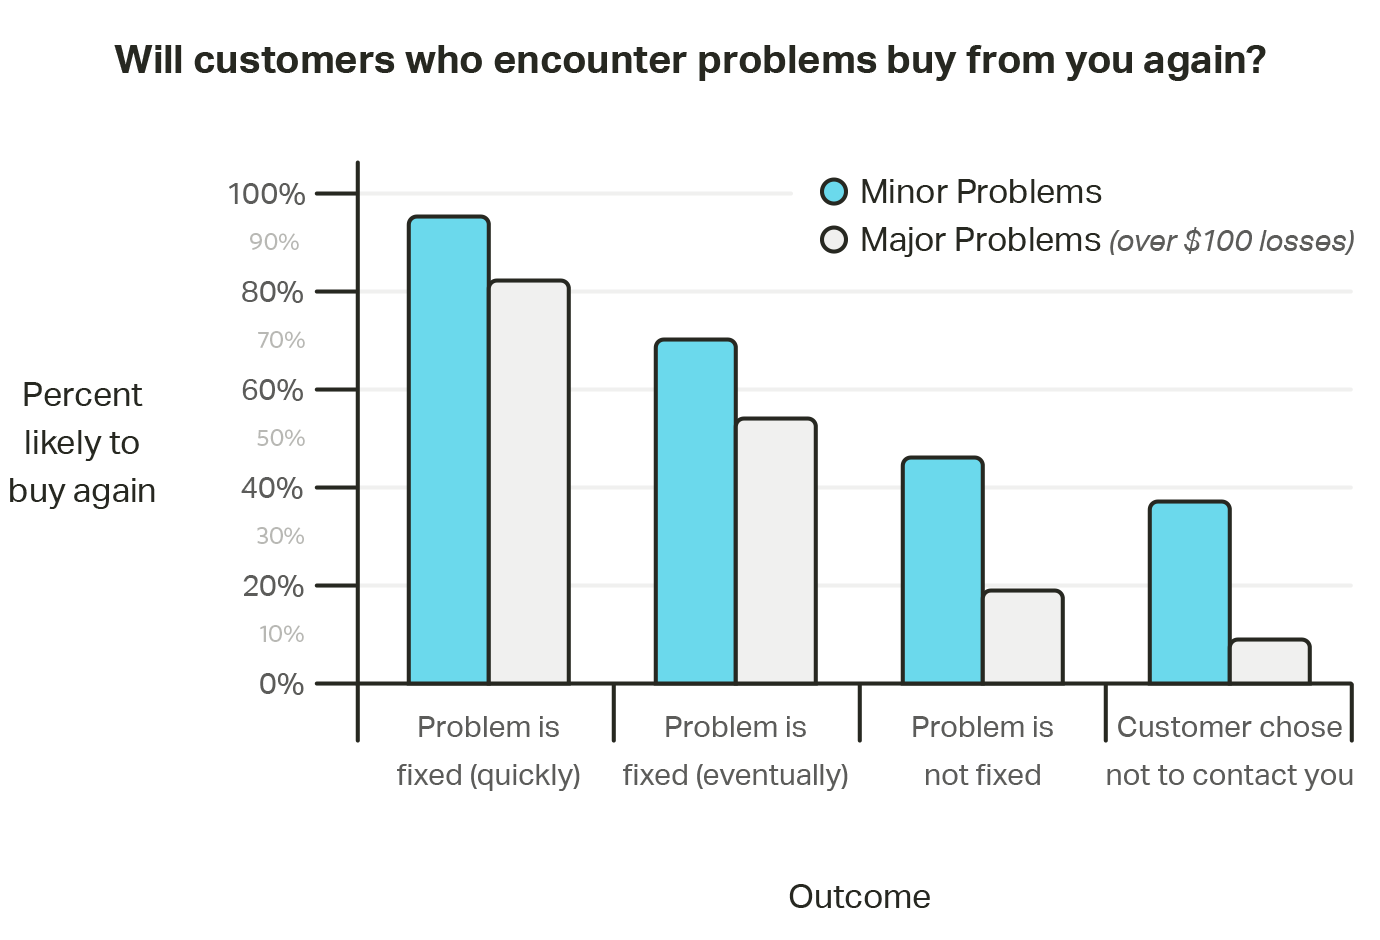 Will customers who encounter problems buy from you again?